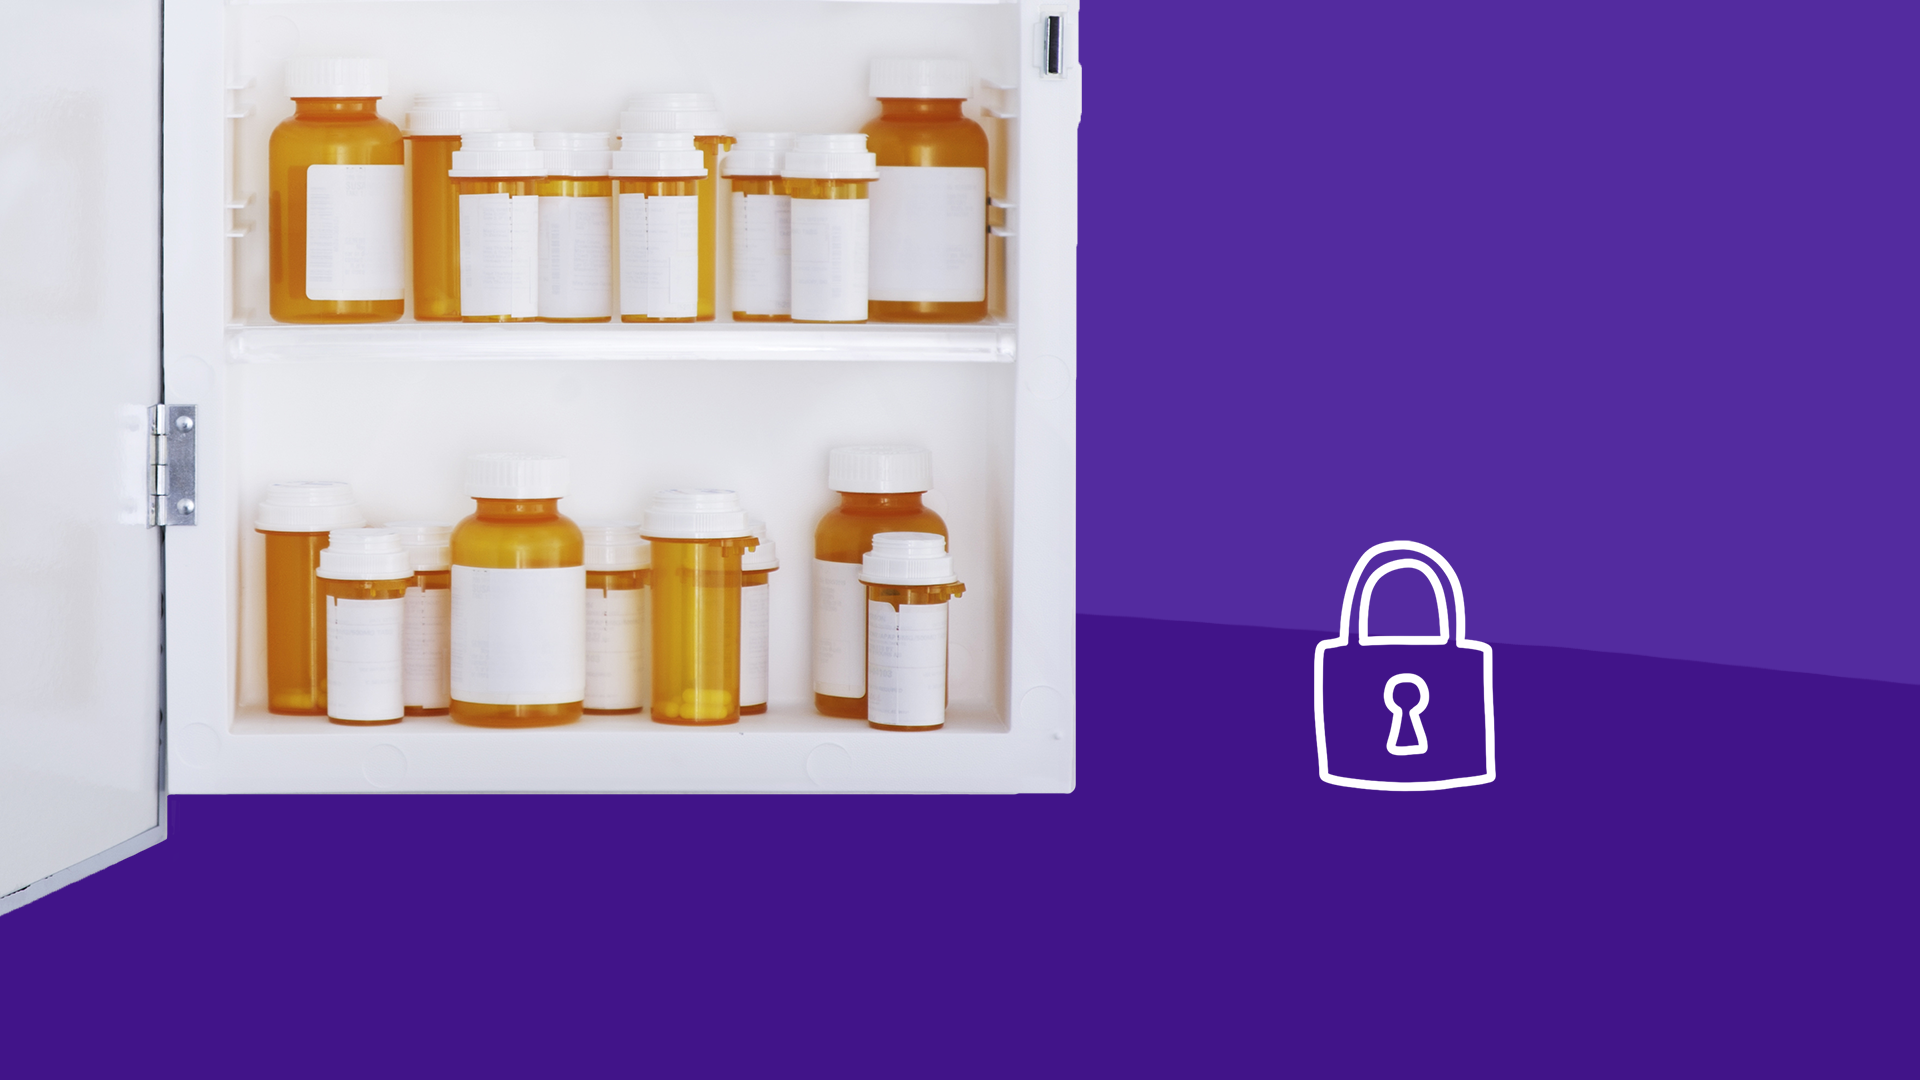 Home medication safety guide–how to keep kids and pets safe